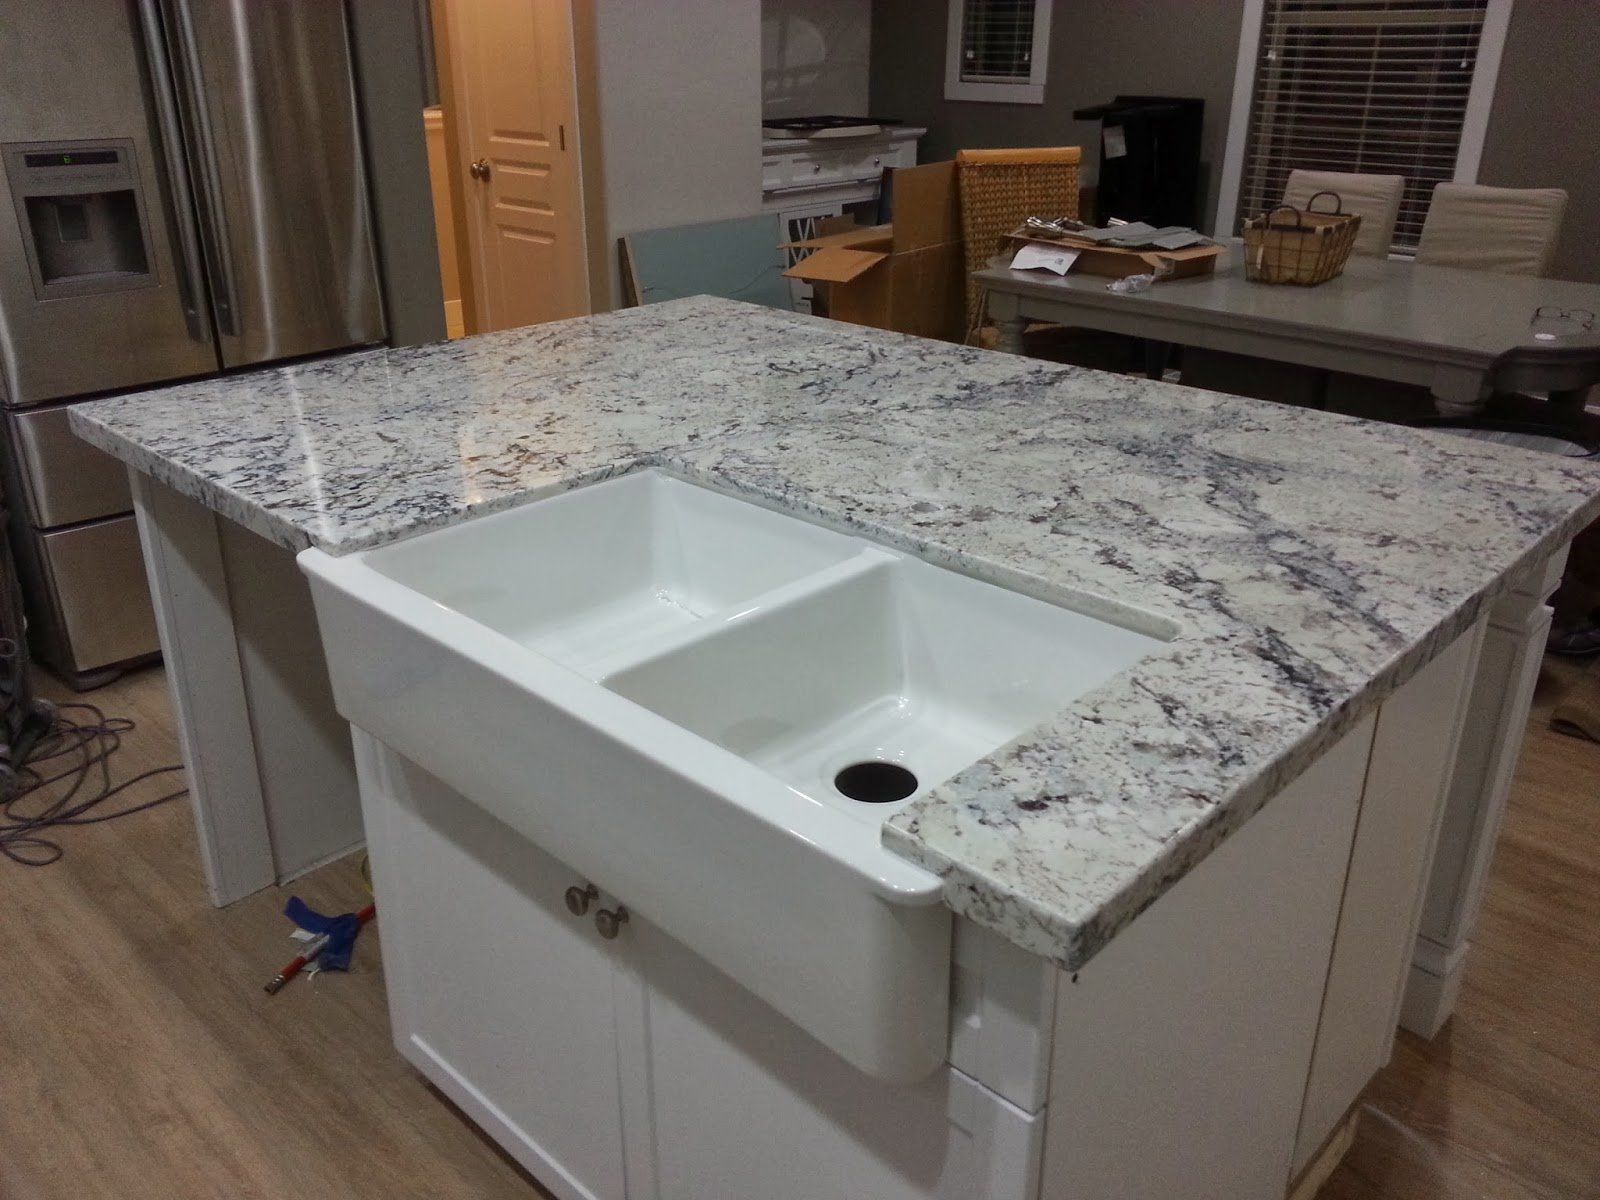 Granite countertops most popular favorite - Granite Countertops Pros And Cons Adorable Grey With Pencil Edges And Countertop Tiles Labels S Interior